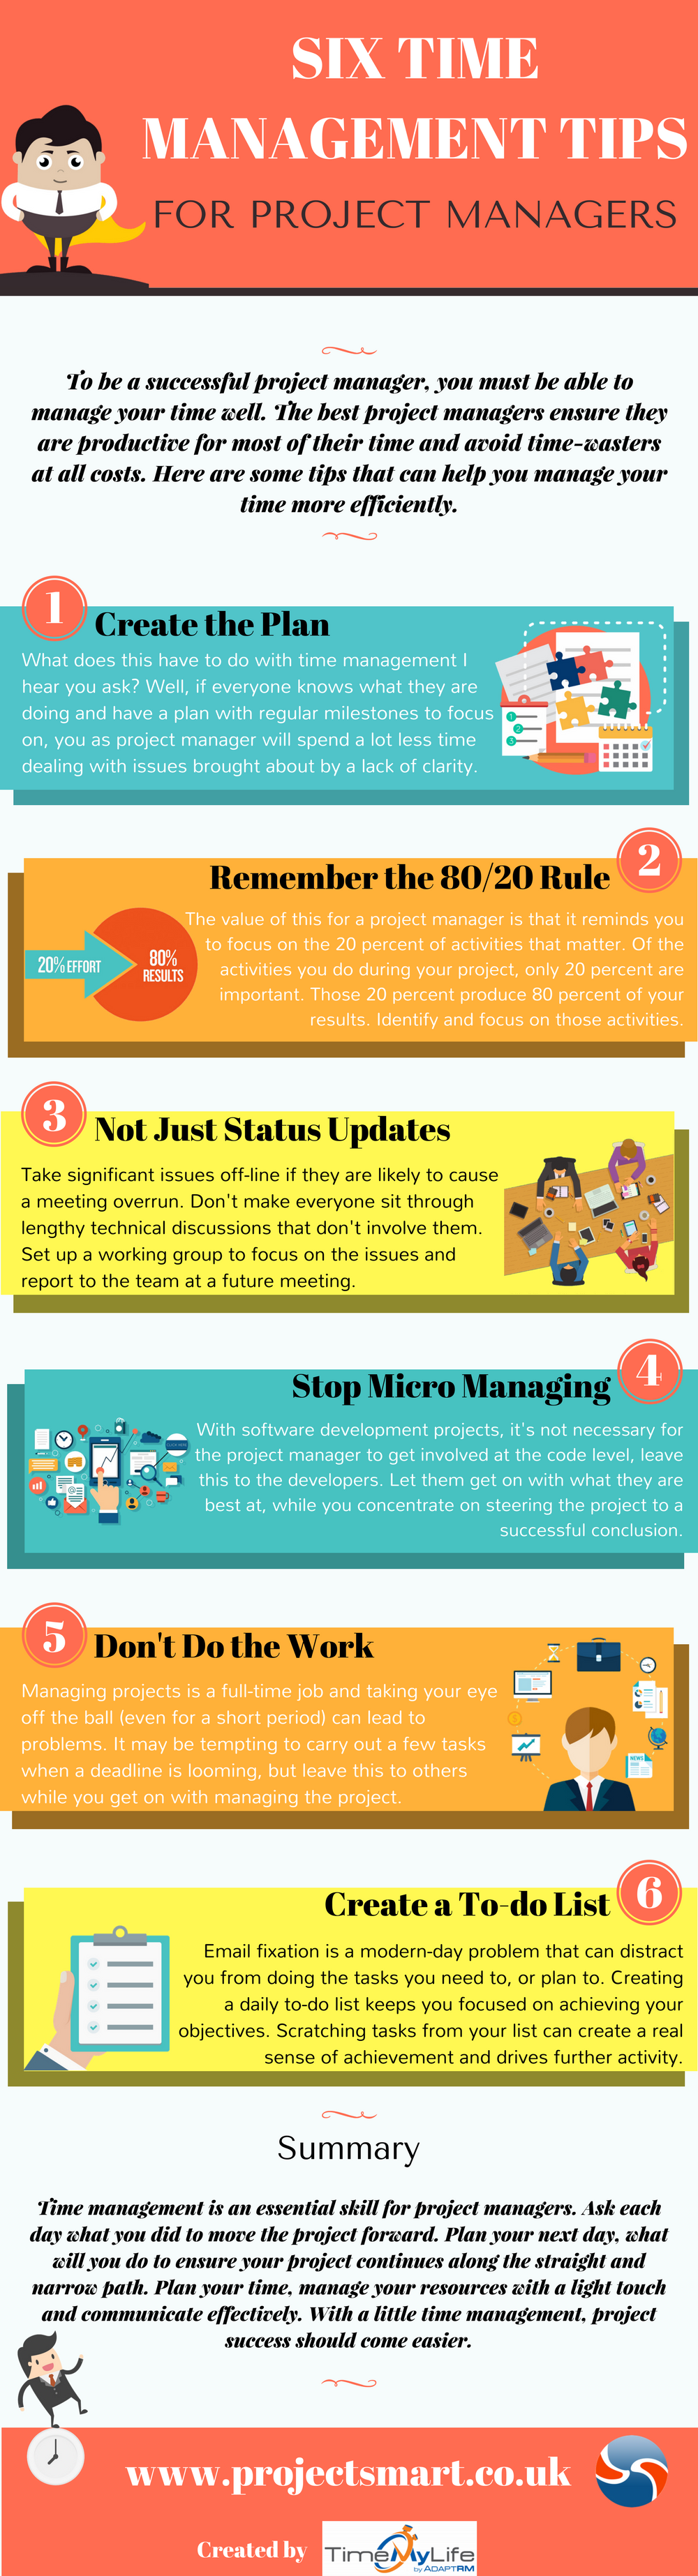 Six Time Management Tips For Project Managers Infographic